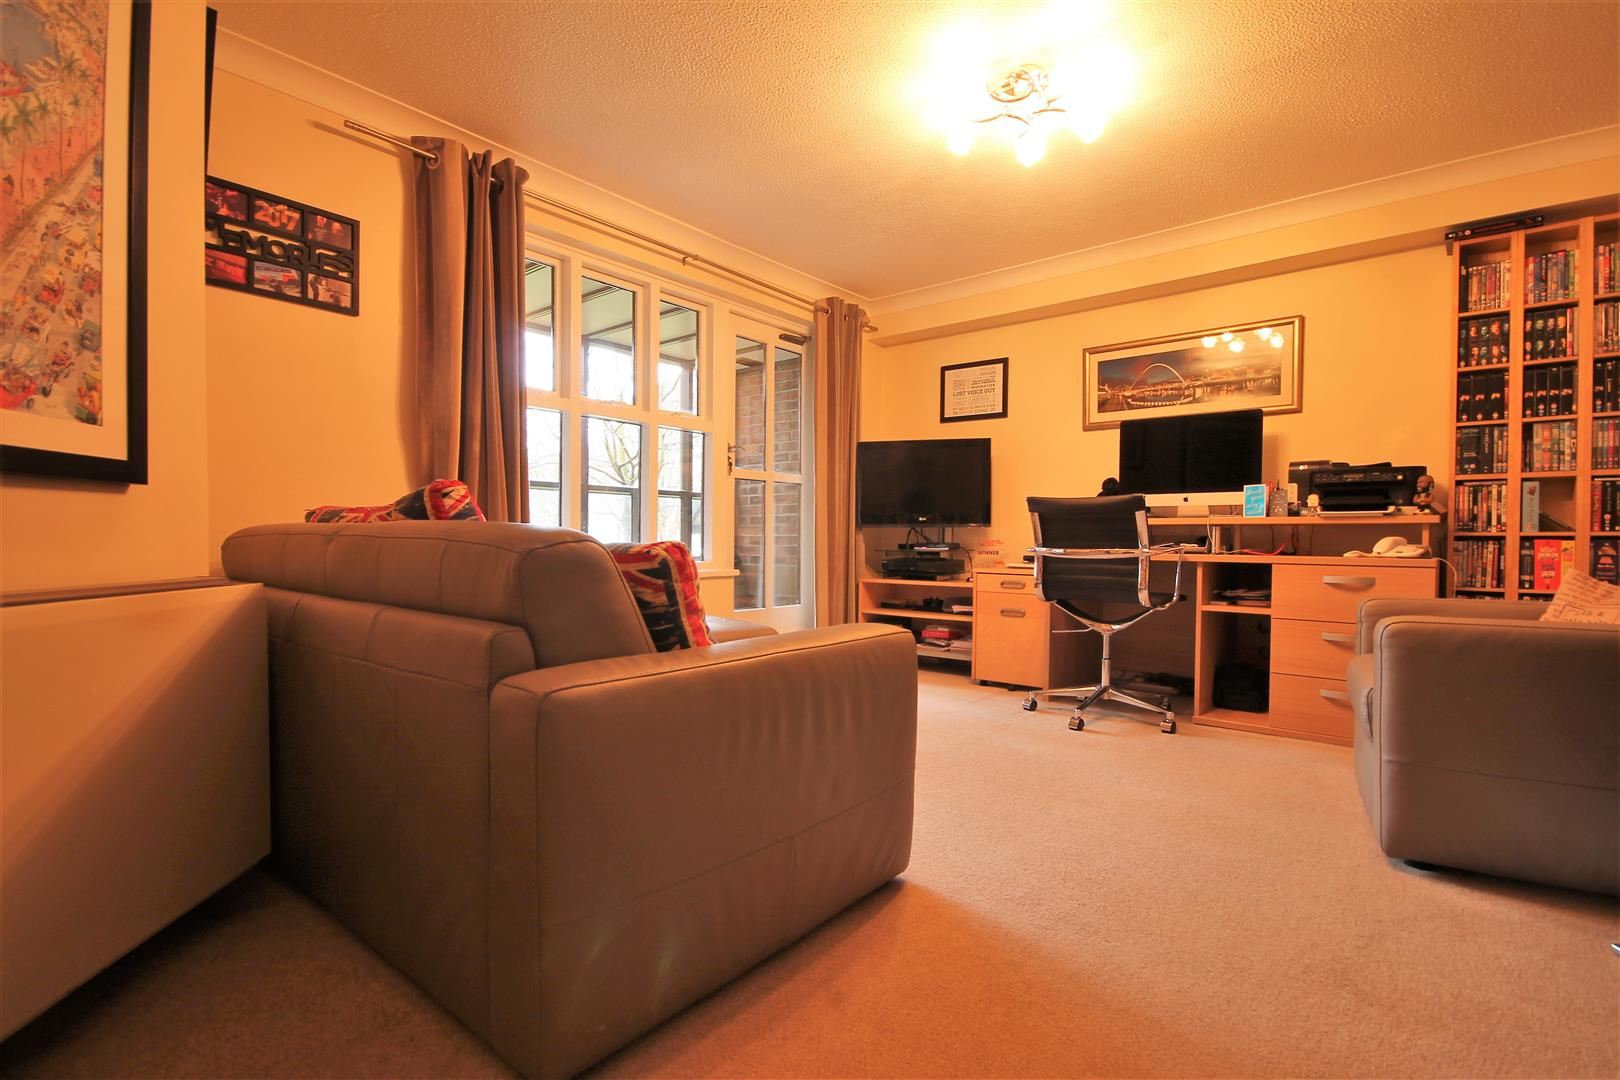 The Chare Newcastle Upon Tyne, 2 Bedrooms  Apartment ,Sold (STC)